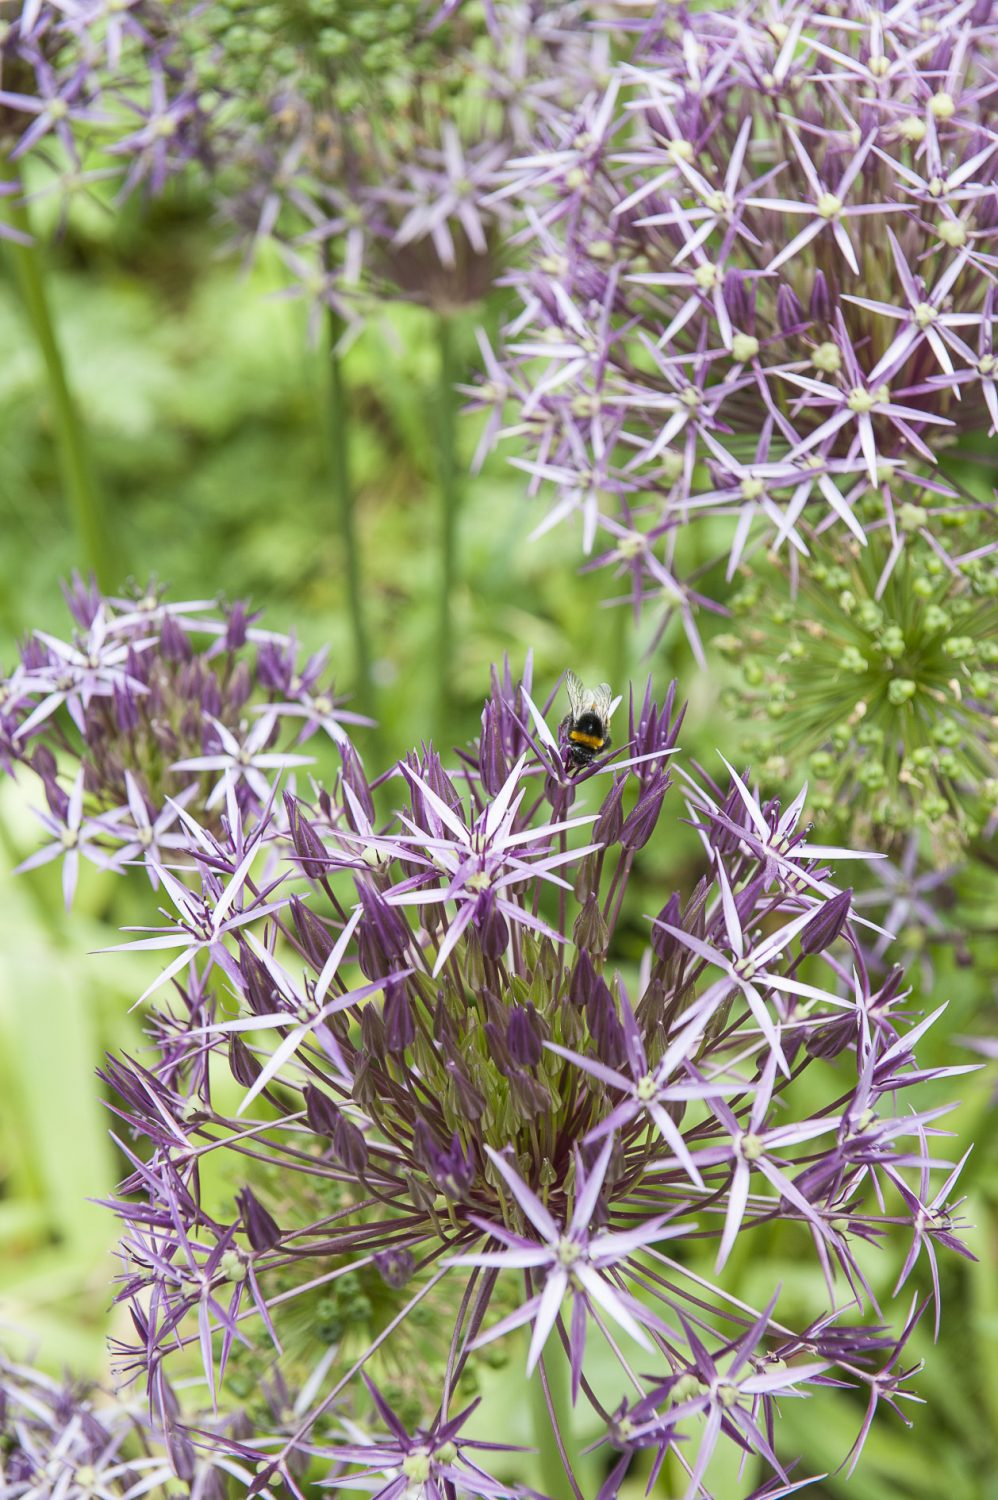 Alliums in the garden